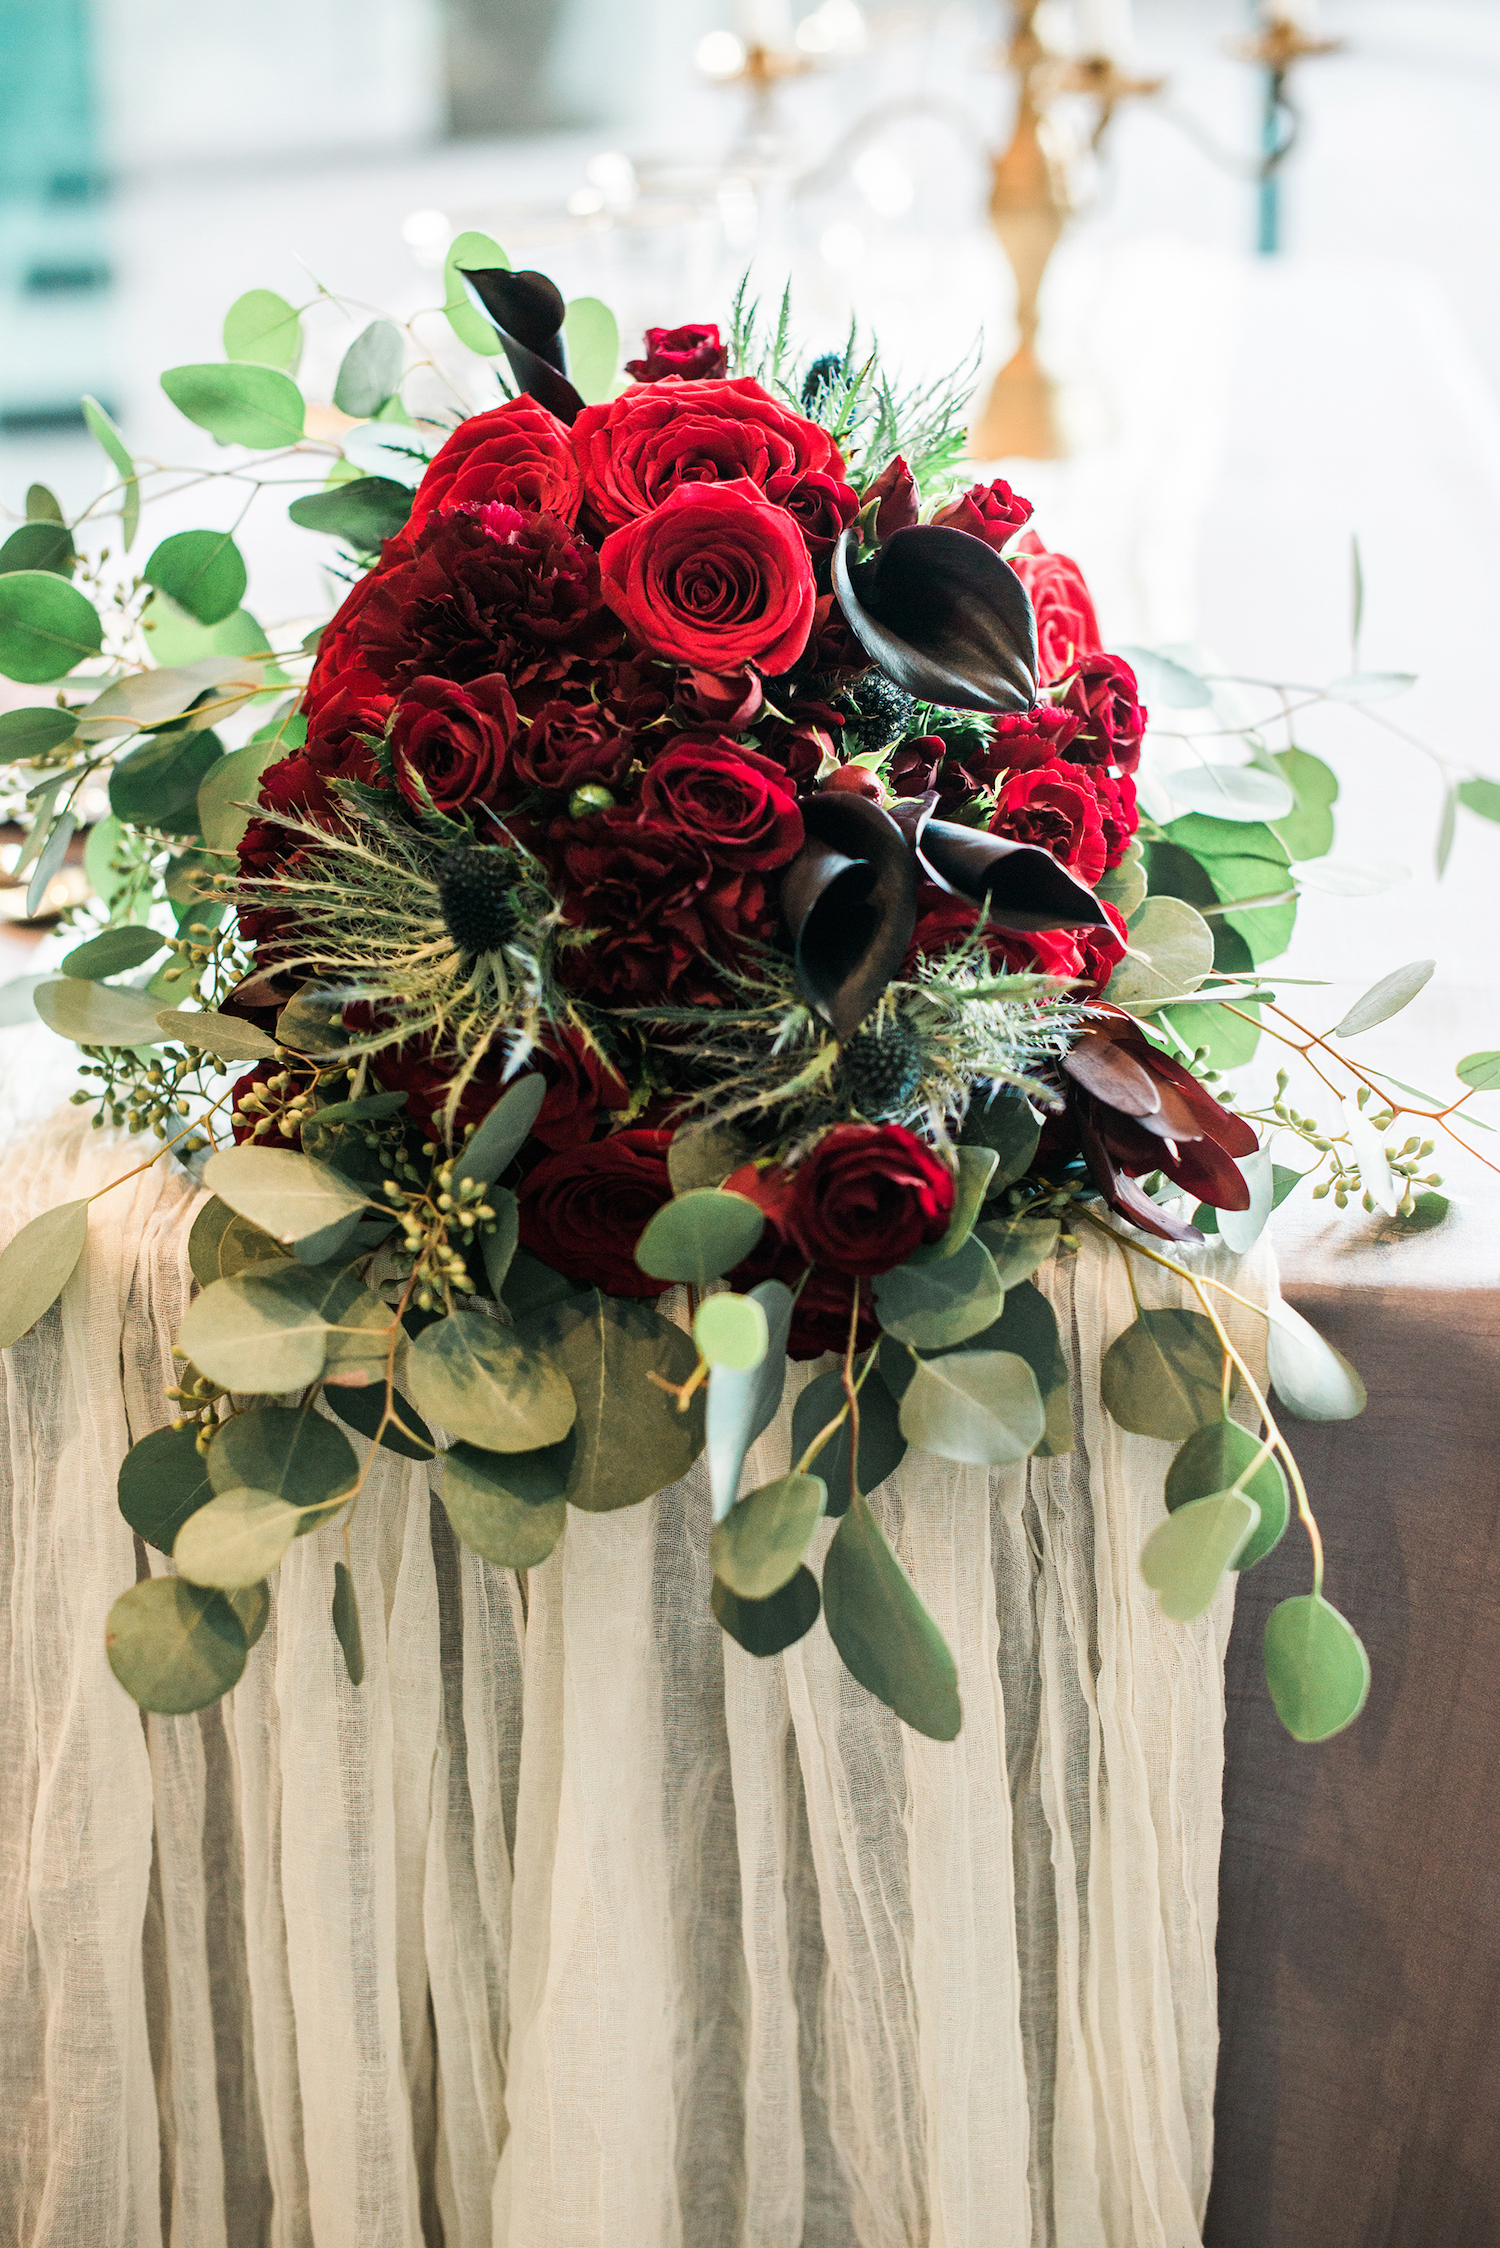 Gorgeous Red Roses and Carnations with Thistle Centerpiece — luxurious and romantic vintage wedding inspiration — photo by Marianne Blackham Photography — as seen on www.BrendasWeddingBlog.com